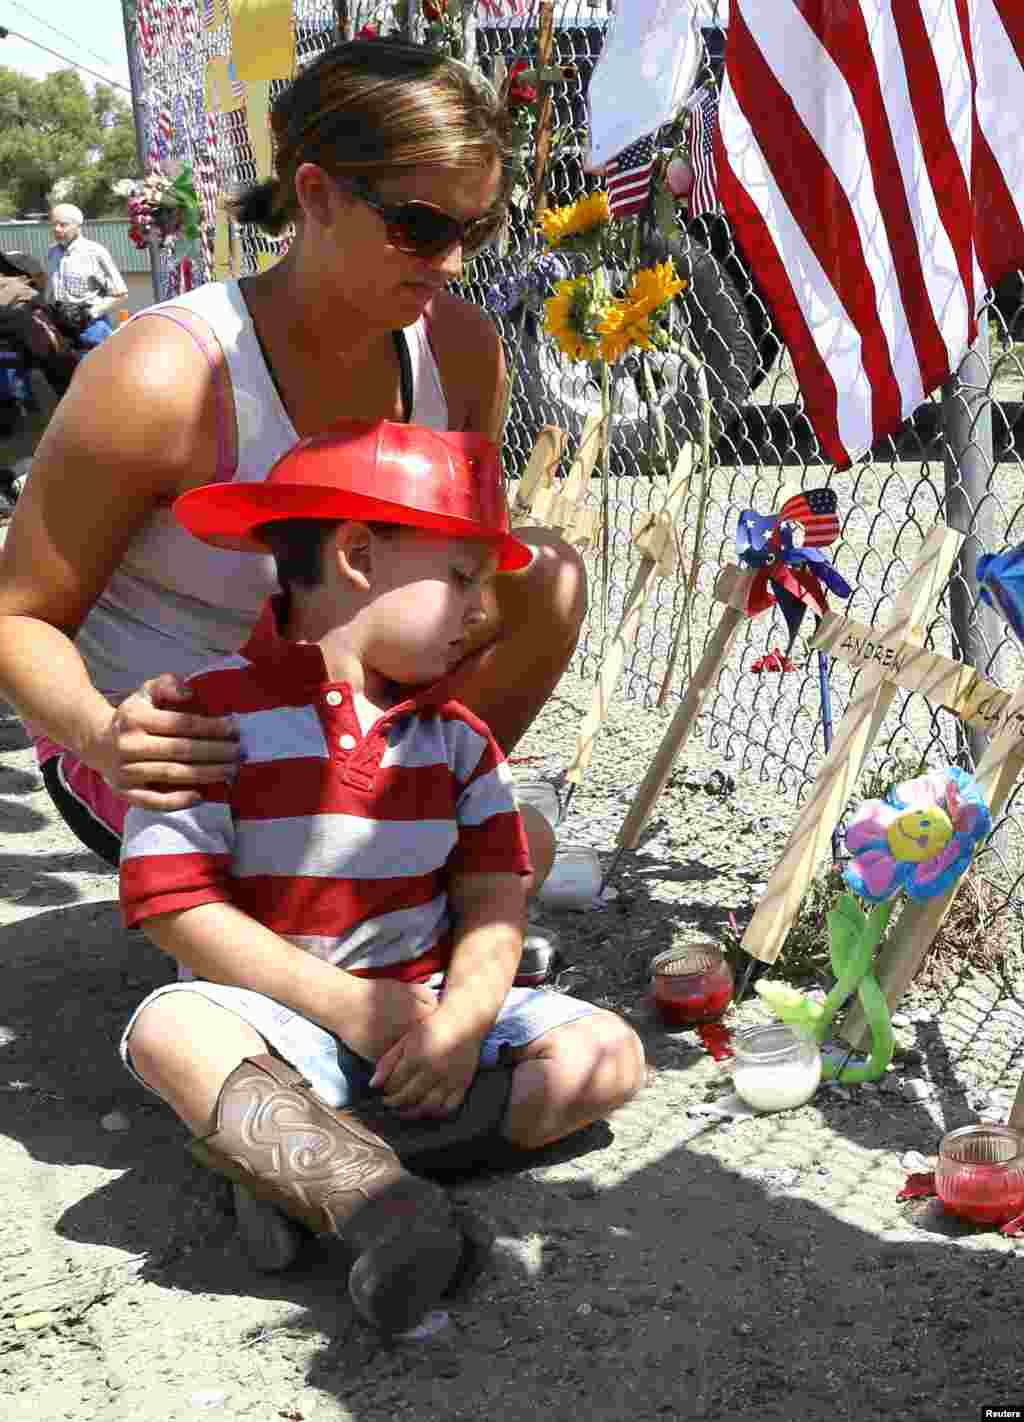 Casen Beyea, 3, wearing a toy fireman helmet looks at the cross for Andrew Ashcrast with his mother Christine at a memorial in Prescott, Arizona, July 2, 2013.